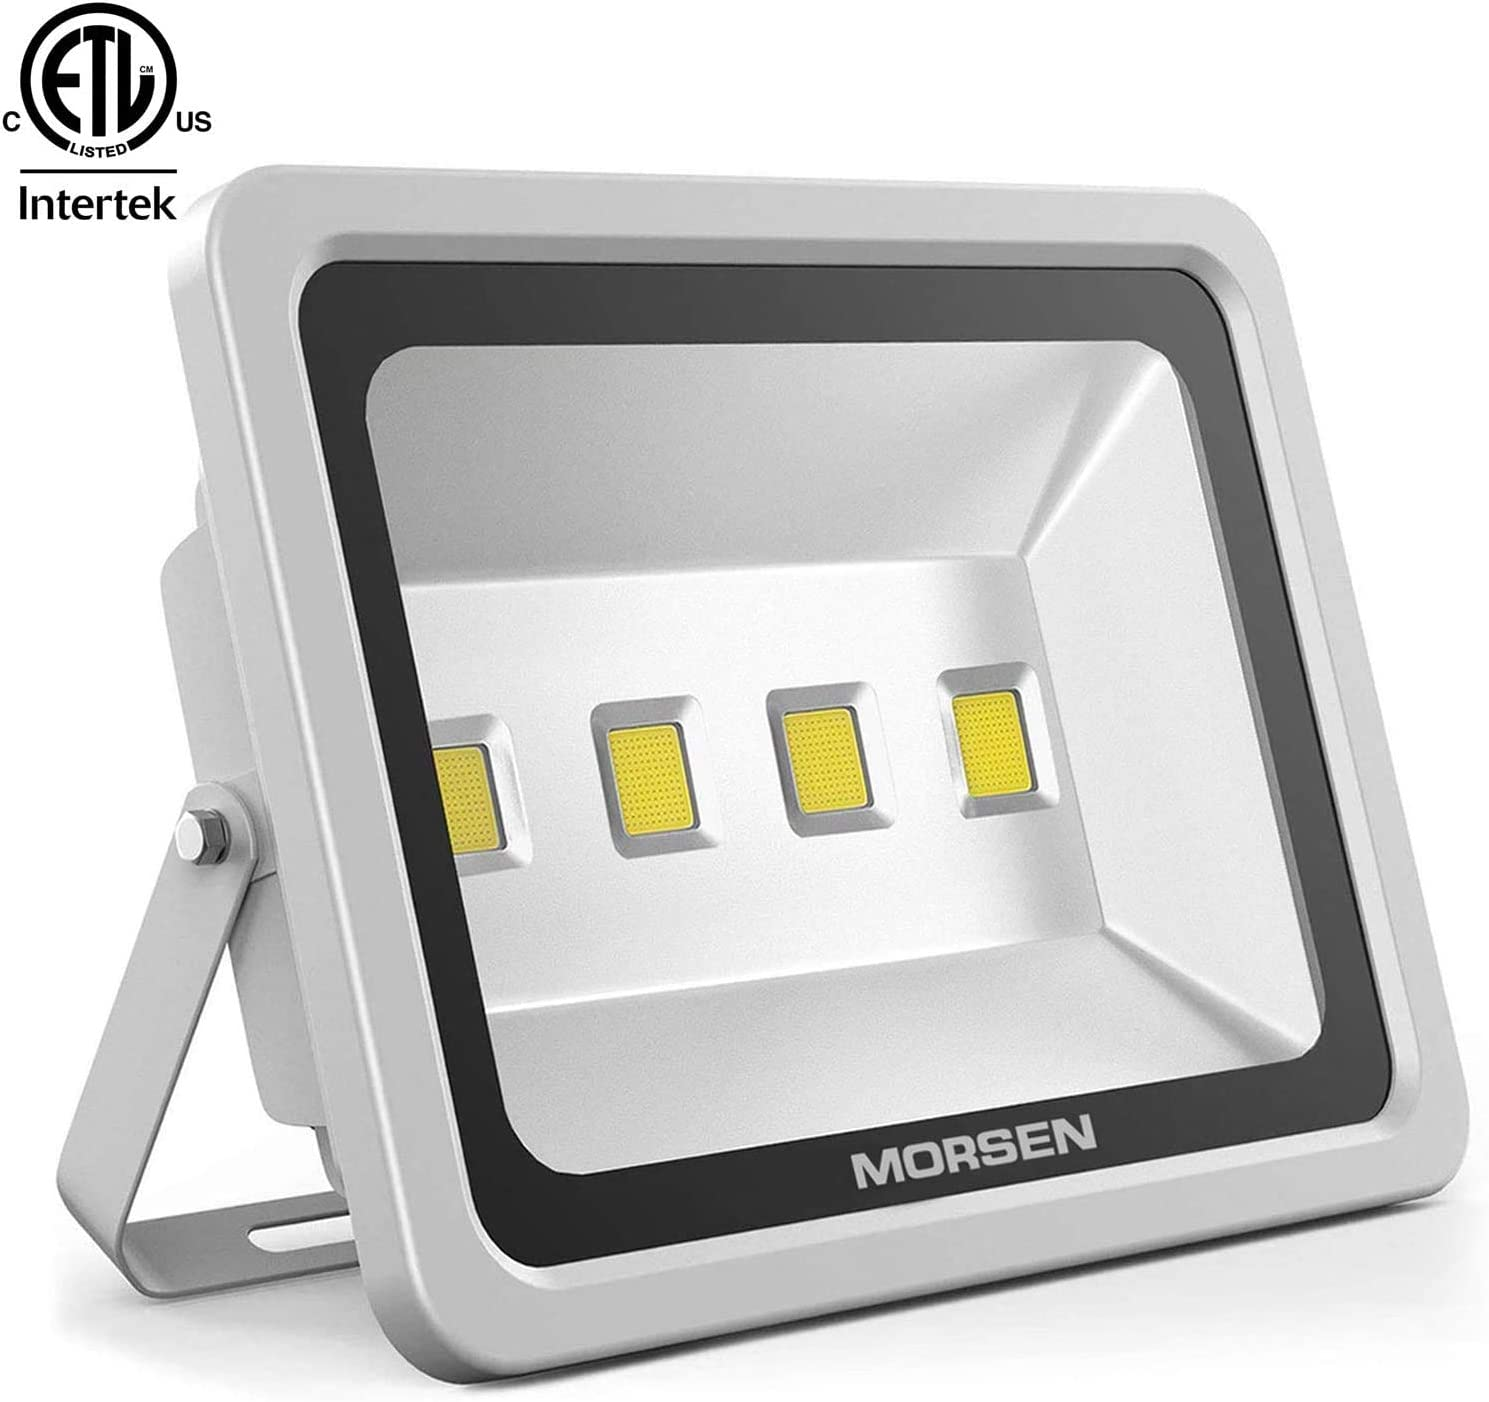 MORSEN LED Flood Light 200W, ETL Listed Waterproof IP65 Outdoor 20000lm 6000K Flood Spotlight for Garden Yard, Party, Playground, Warehouse, Billboard, Garage, Commercial Lighting